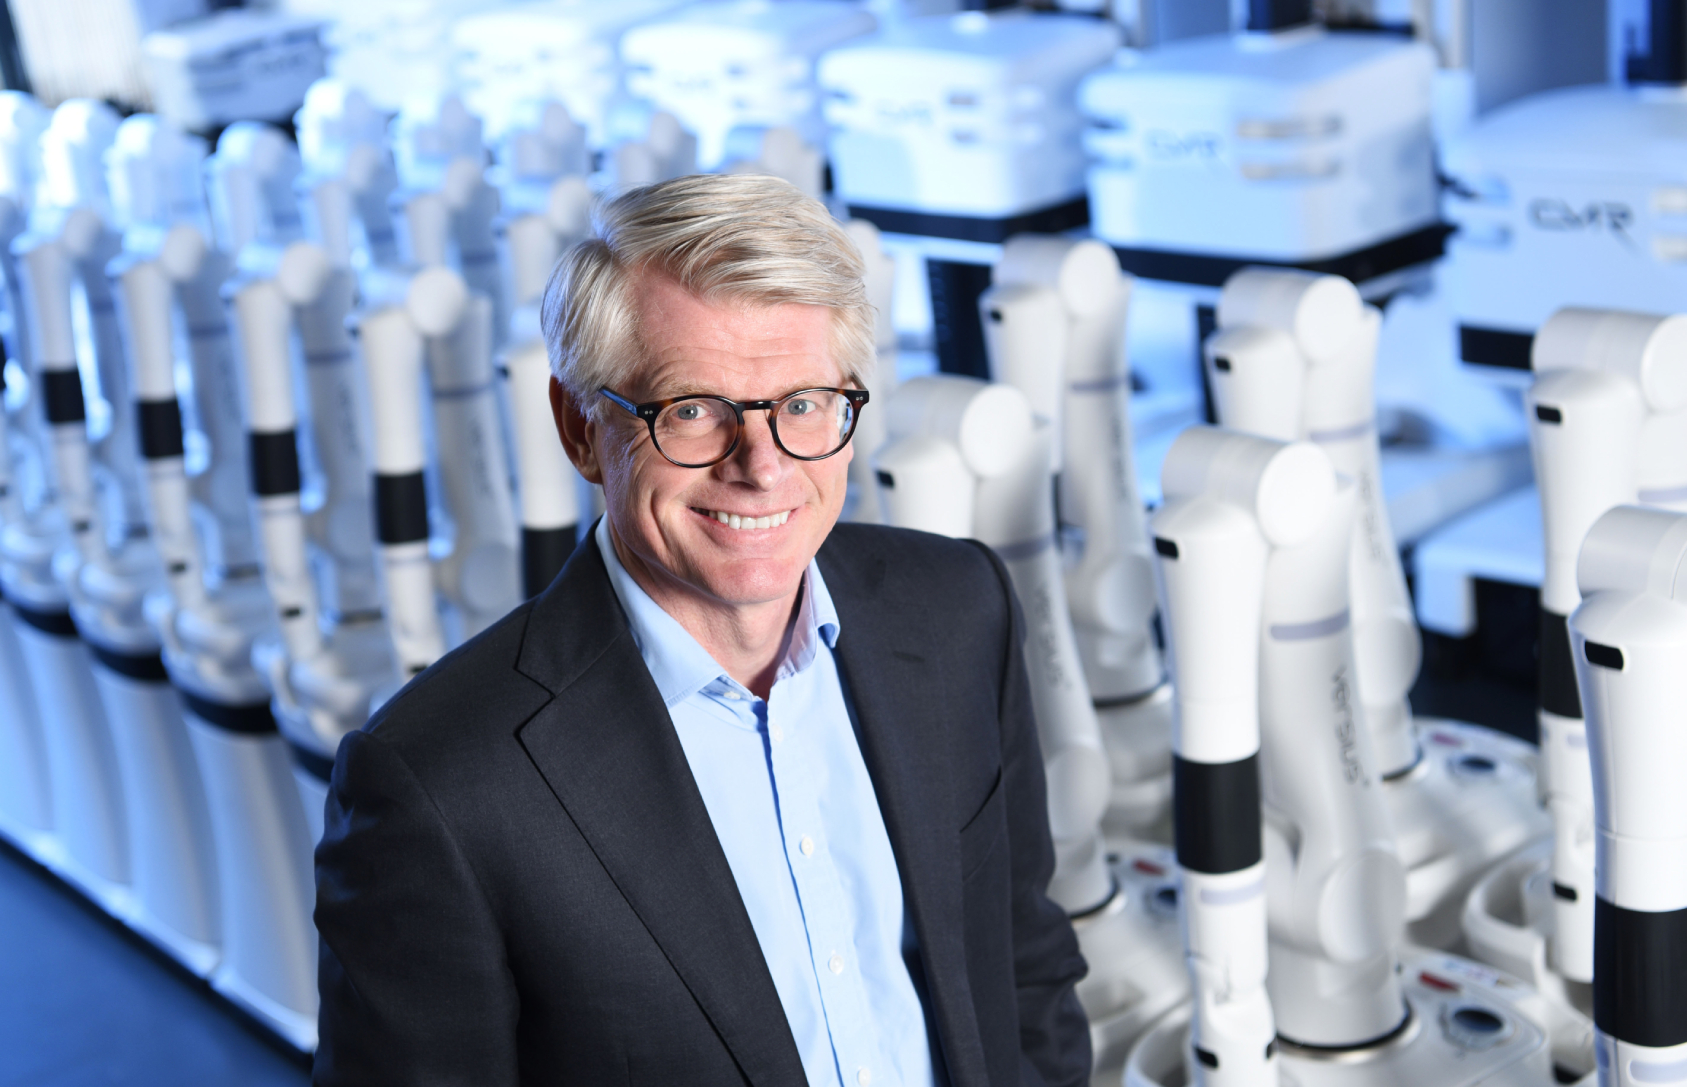 CMR Surgical's $600m round shows medical robotics companies are medtech's future